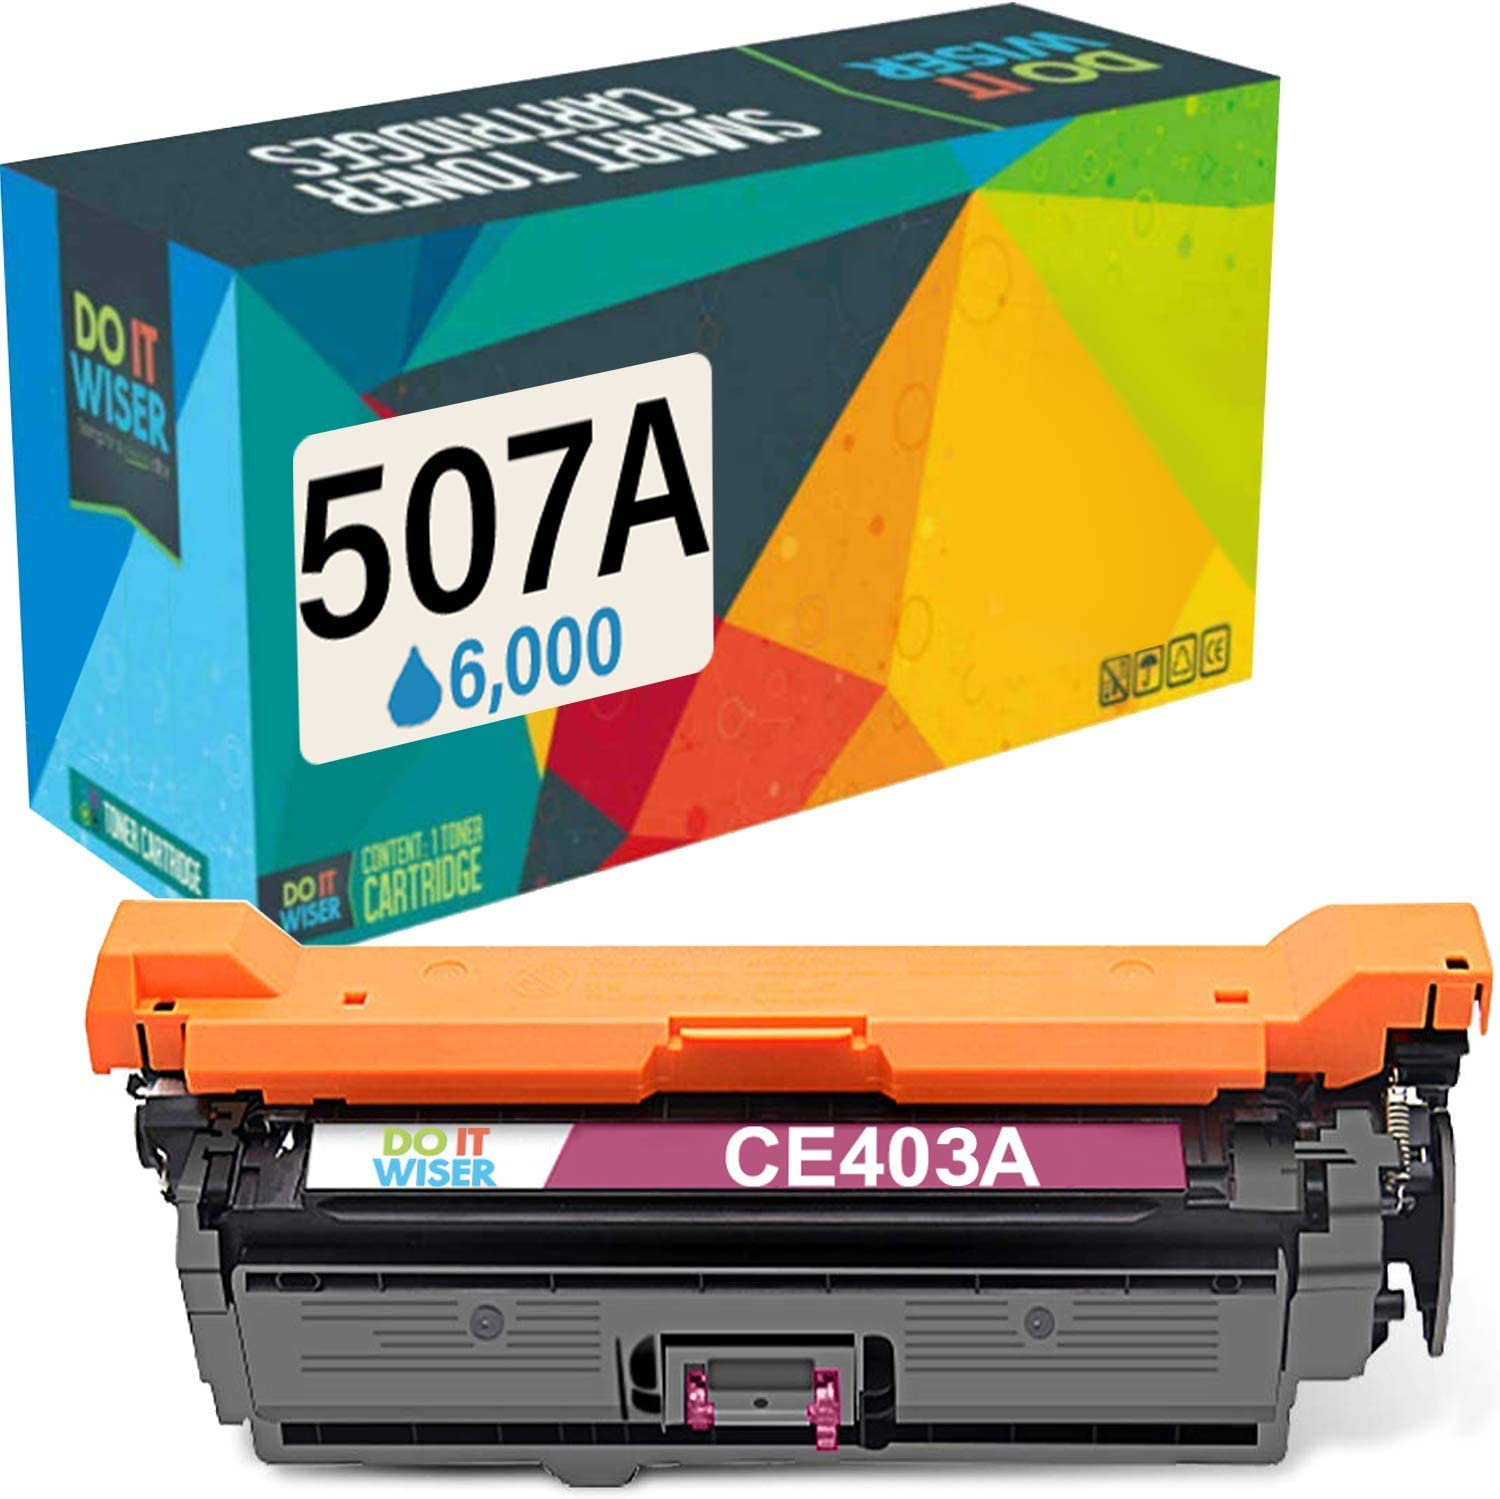 Do it Wiser Remanufactured Toner Cartridge Replacement for HP 507X HP 507A CE402A HP Laserjet Enterprise M551n M551dn M551xh M570dw M570dn M575c M575dn M575f (Magenta)